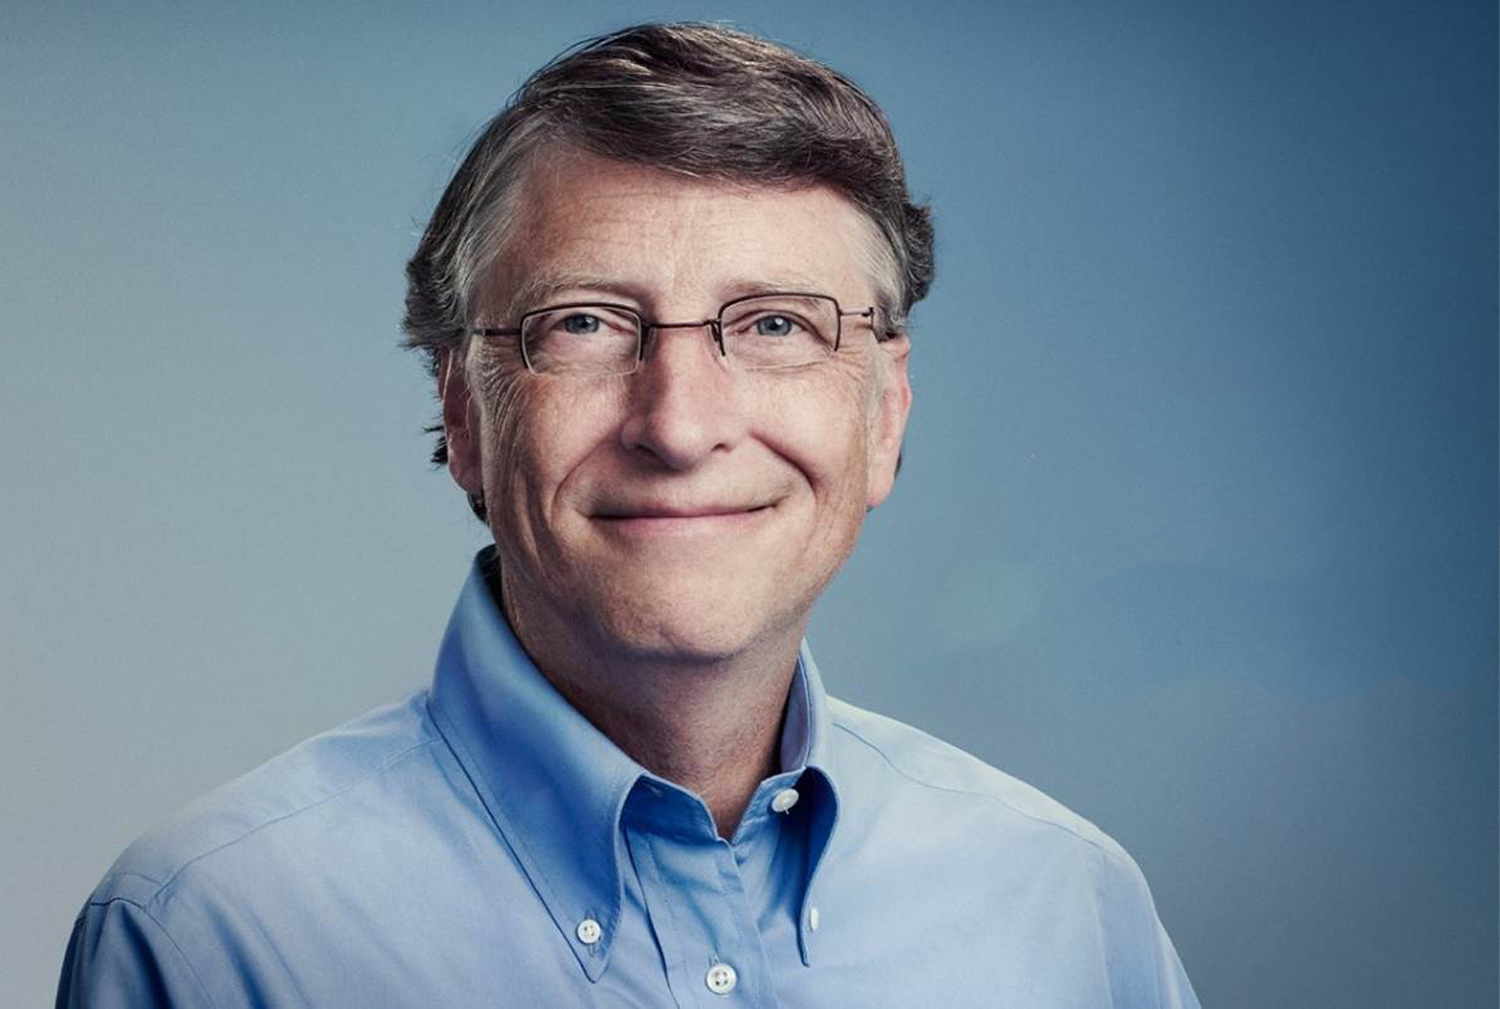 Bill Gates - Biography